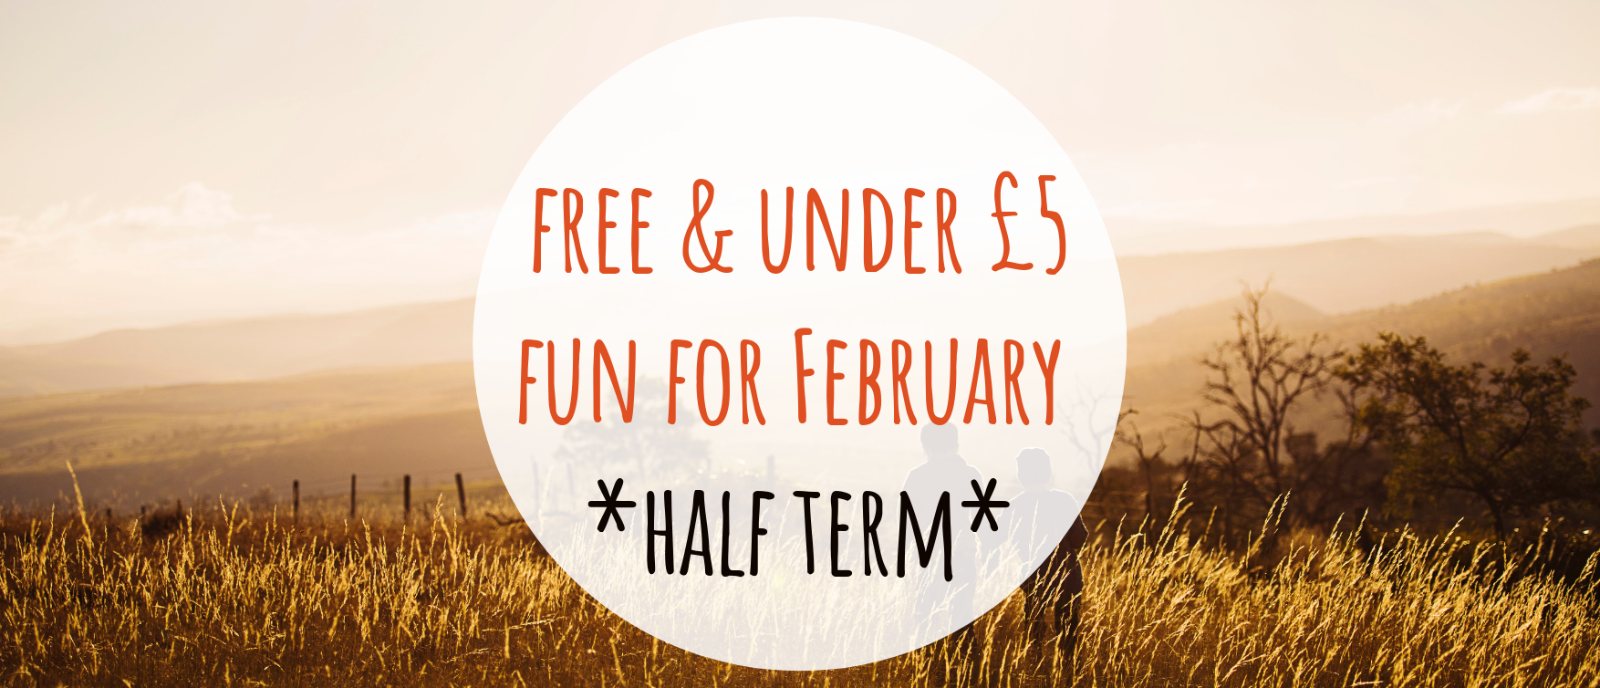 Click here for free & under £5 fun for February Half Term